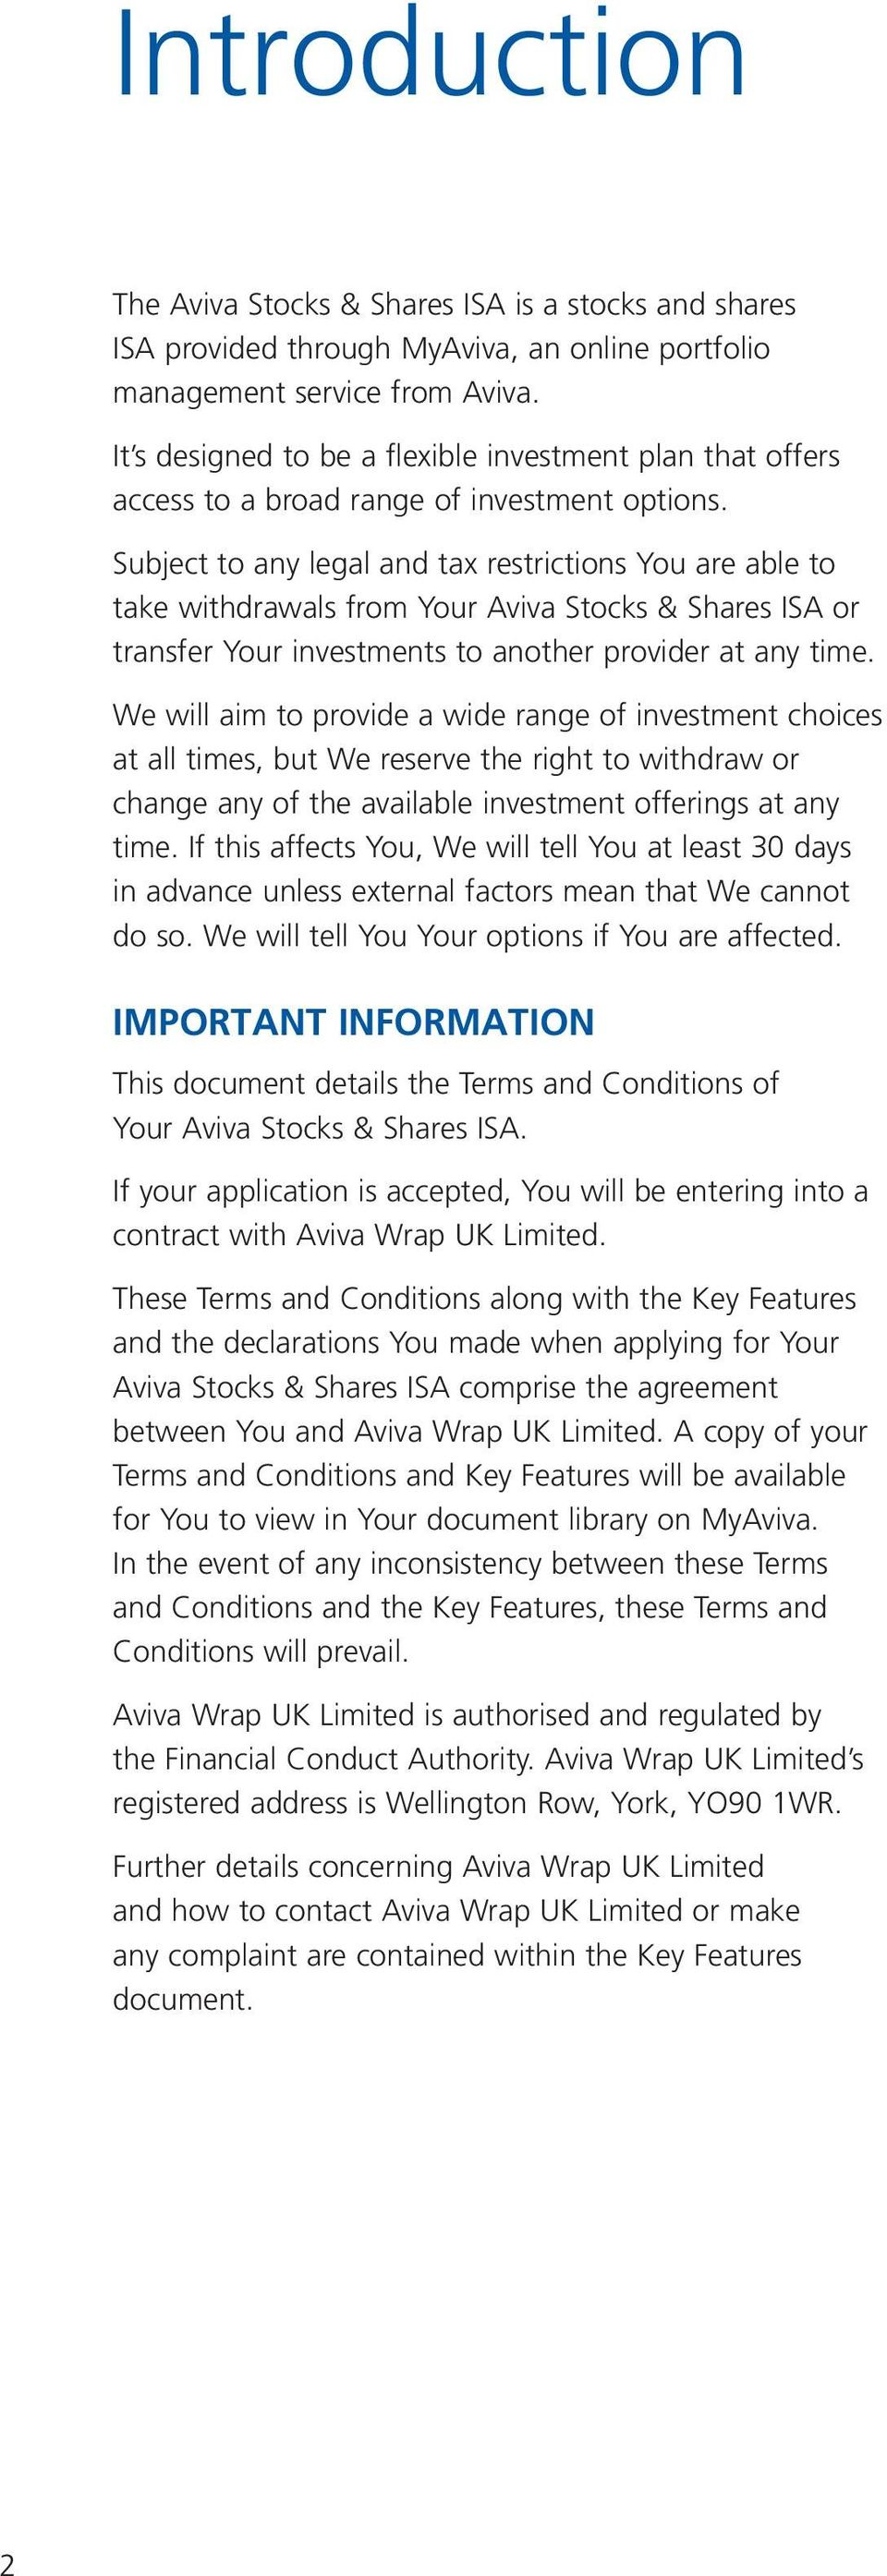 Subject to any legal and tax restrictions You are able to take withdrawals from Your Aviva Stocks & Shares ISA or transfer Your investments to another provider at any time.